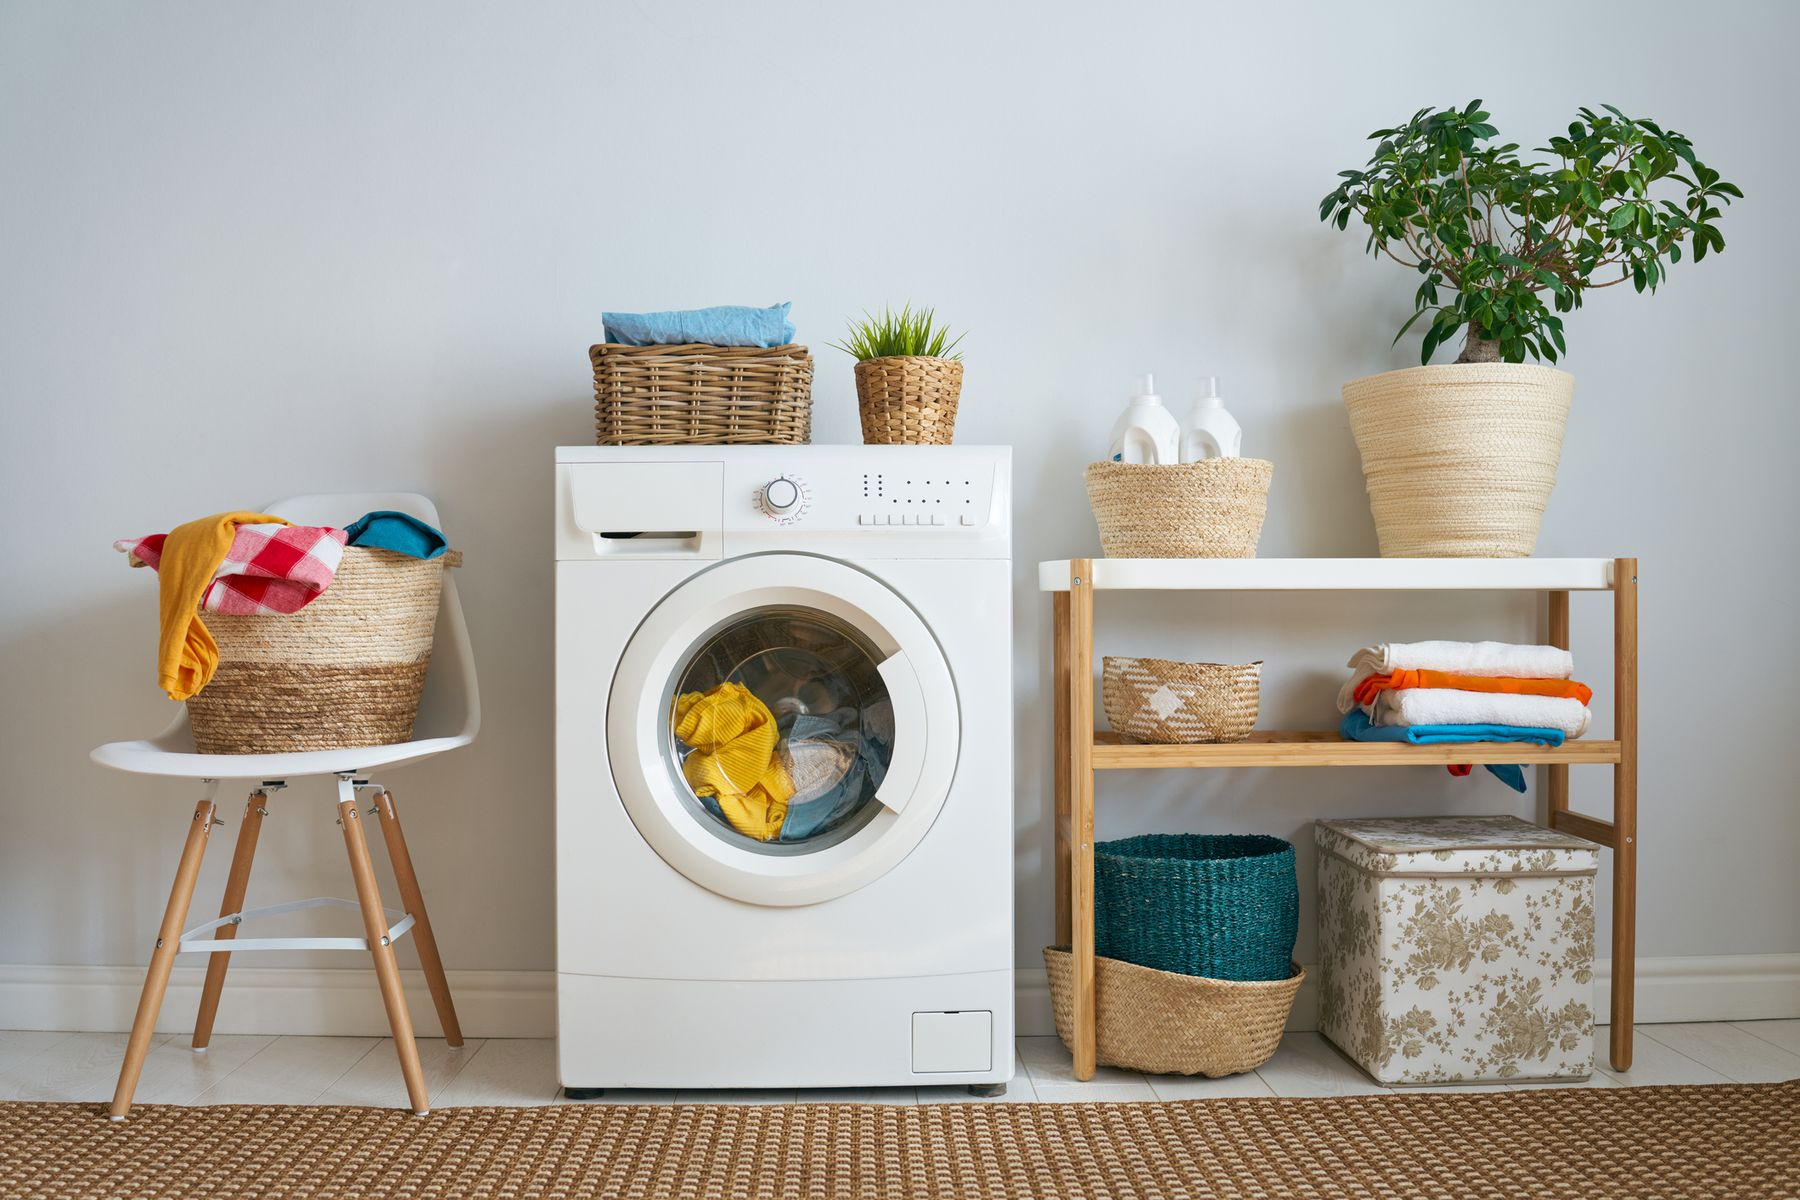 washing machine between chair with bright laundry on top and sideboard